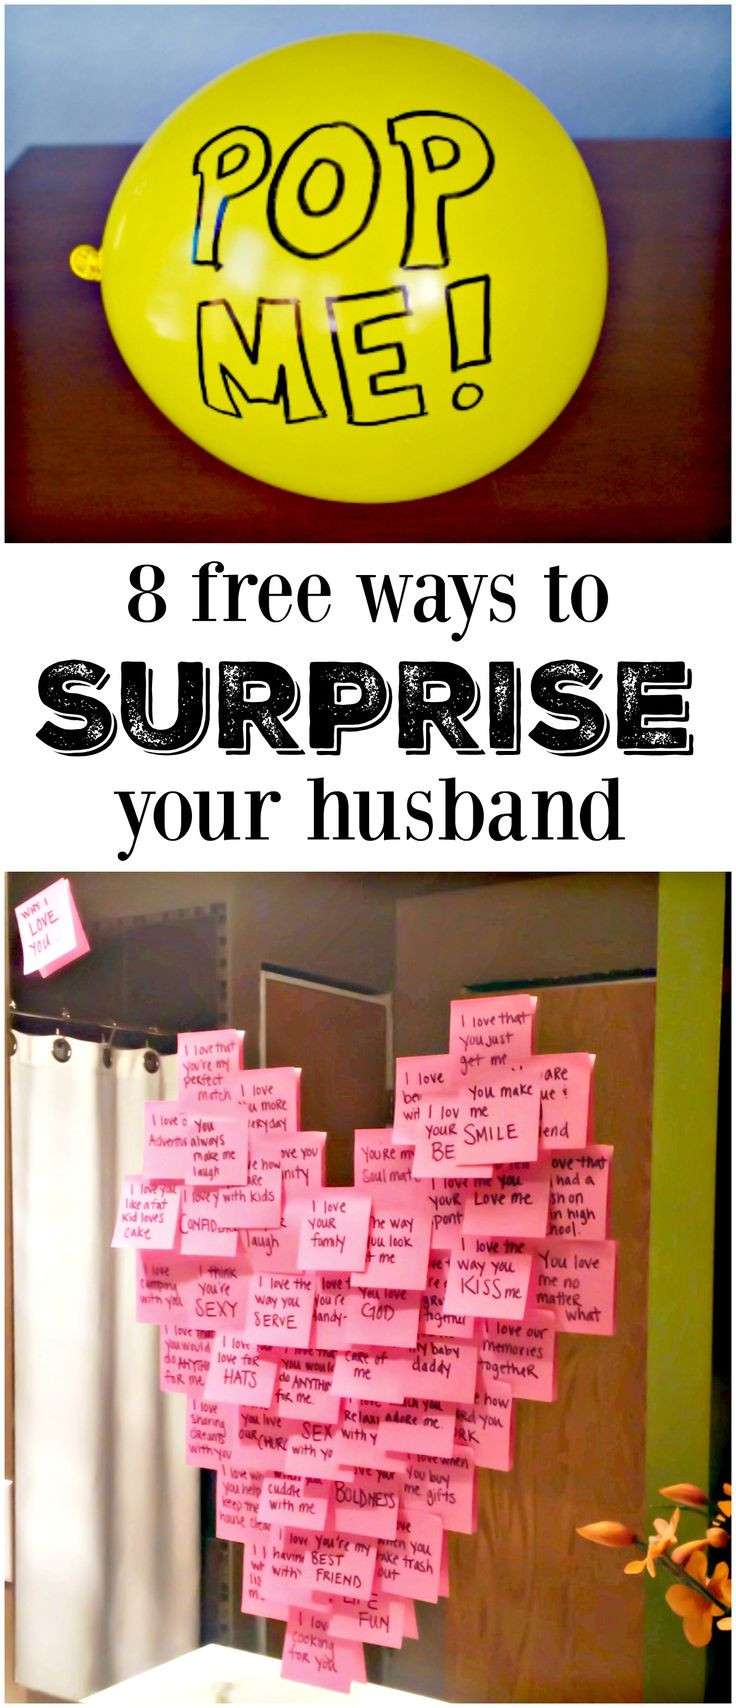 Best ideas about Father'S Day Gift Ideas For Husband . Save or Pin 25 best ideas about Husband birthday ts on Pinterest Now.